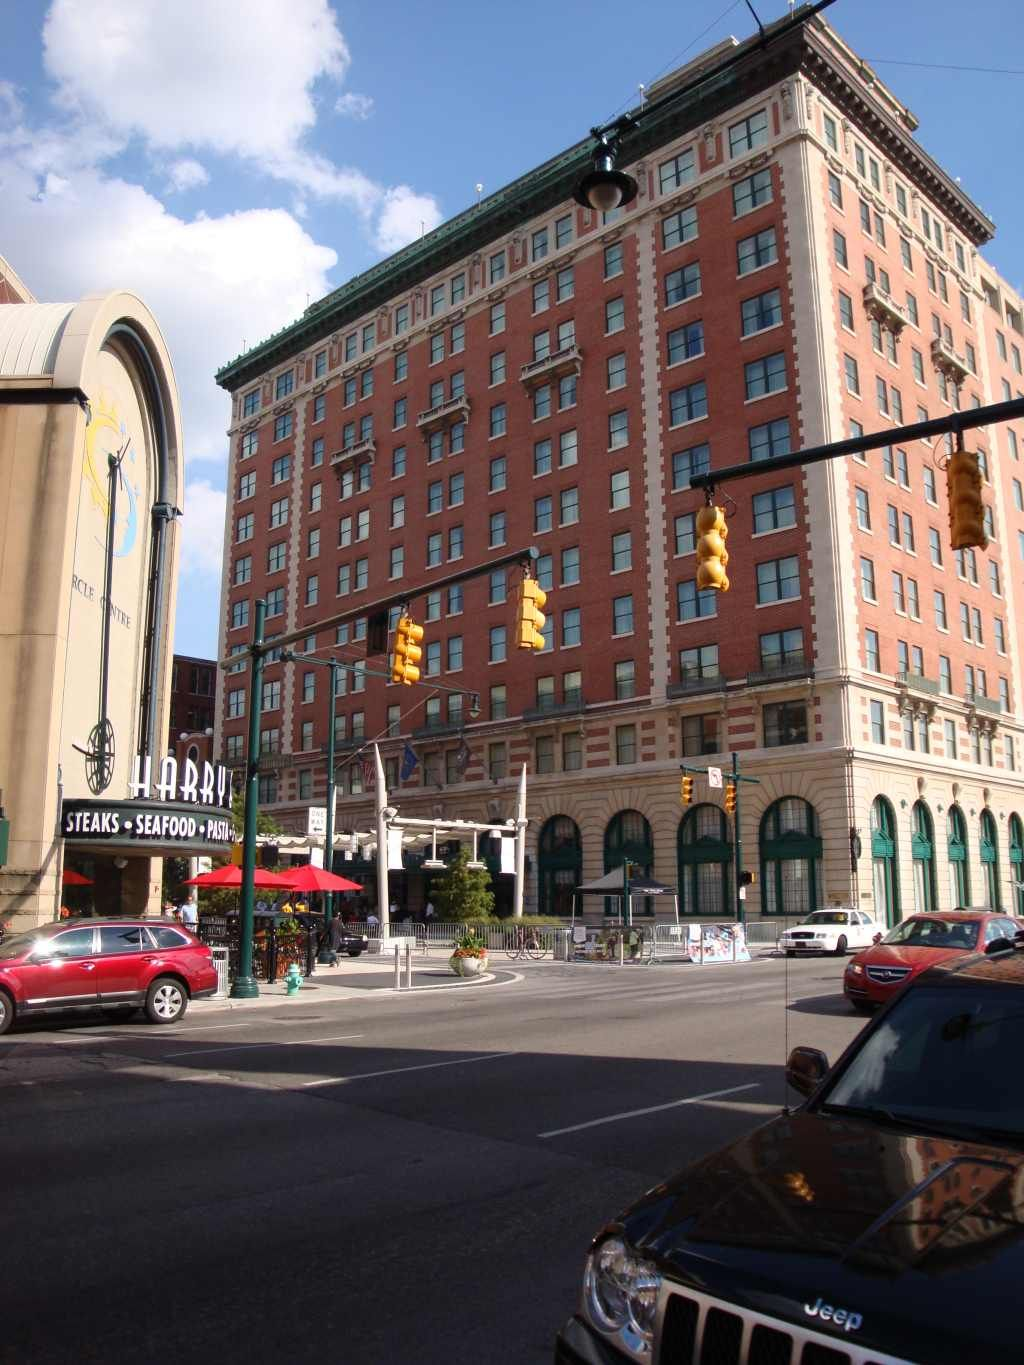 The Omni Severin Hotel Indianapolis Indianapolis Downtown Hotel